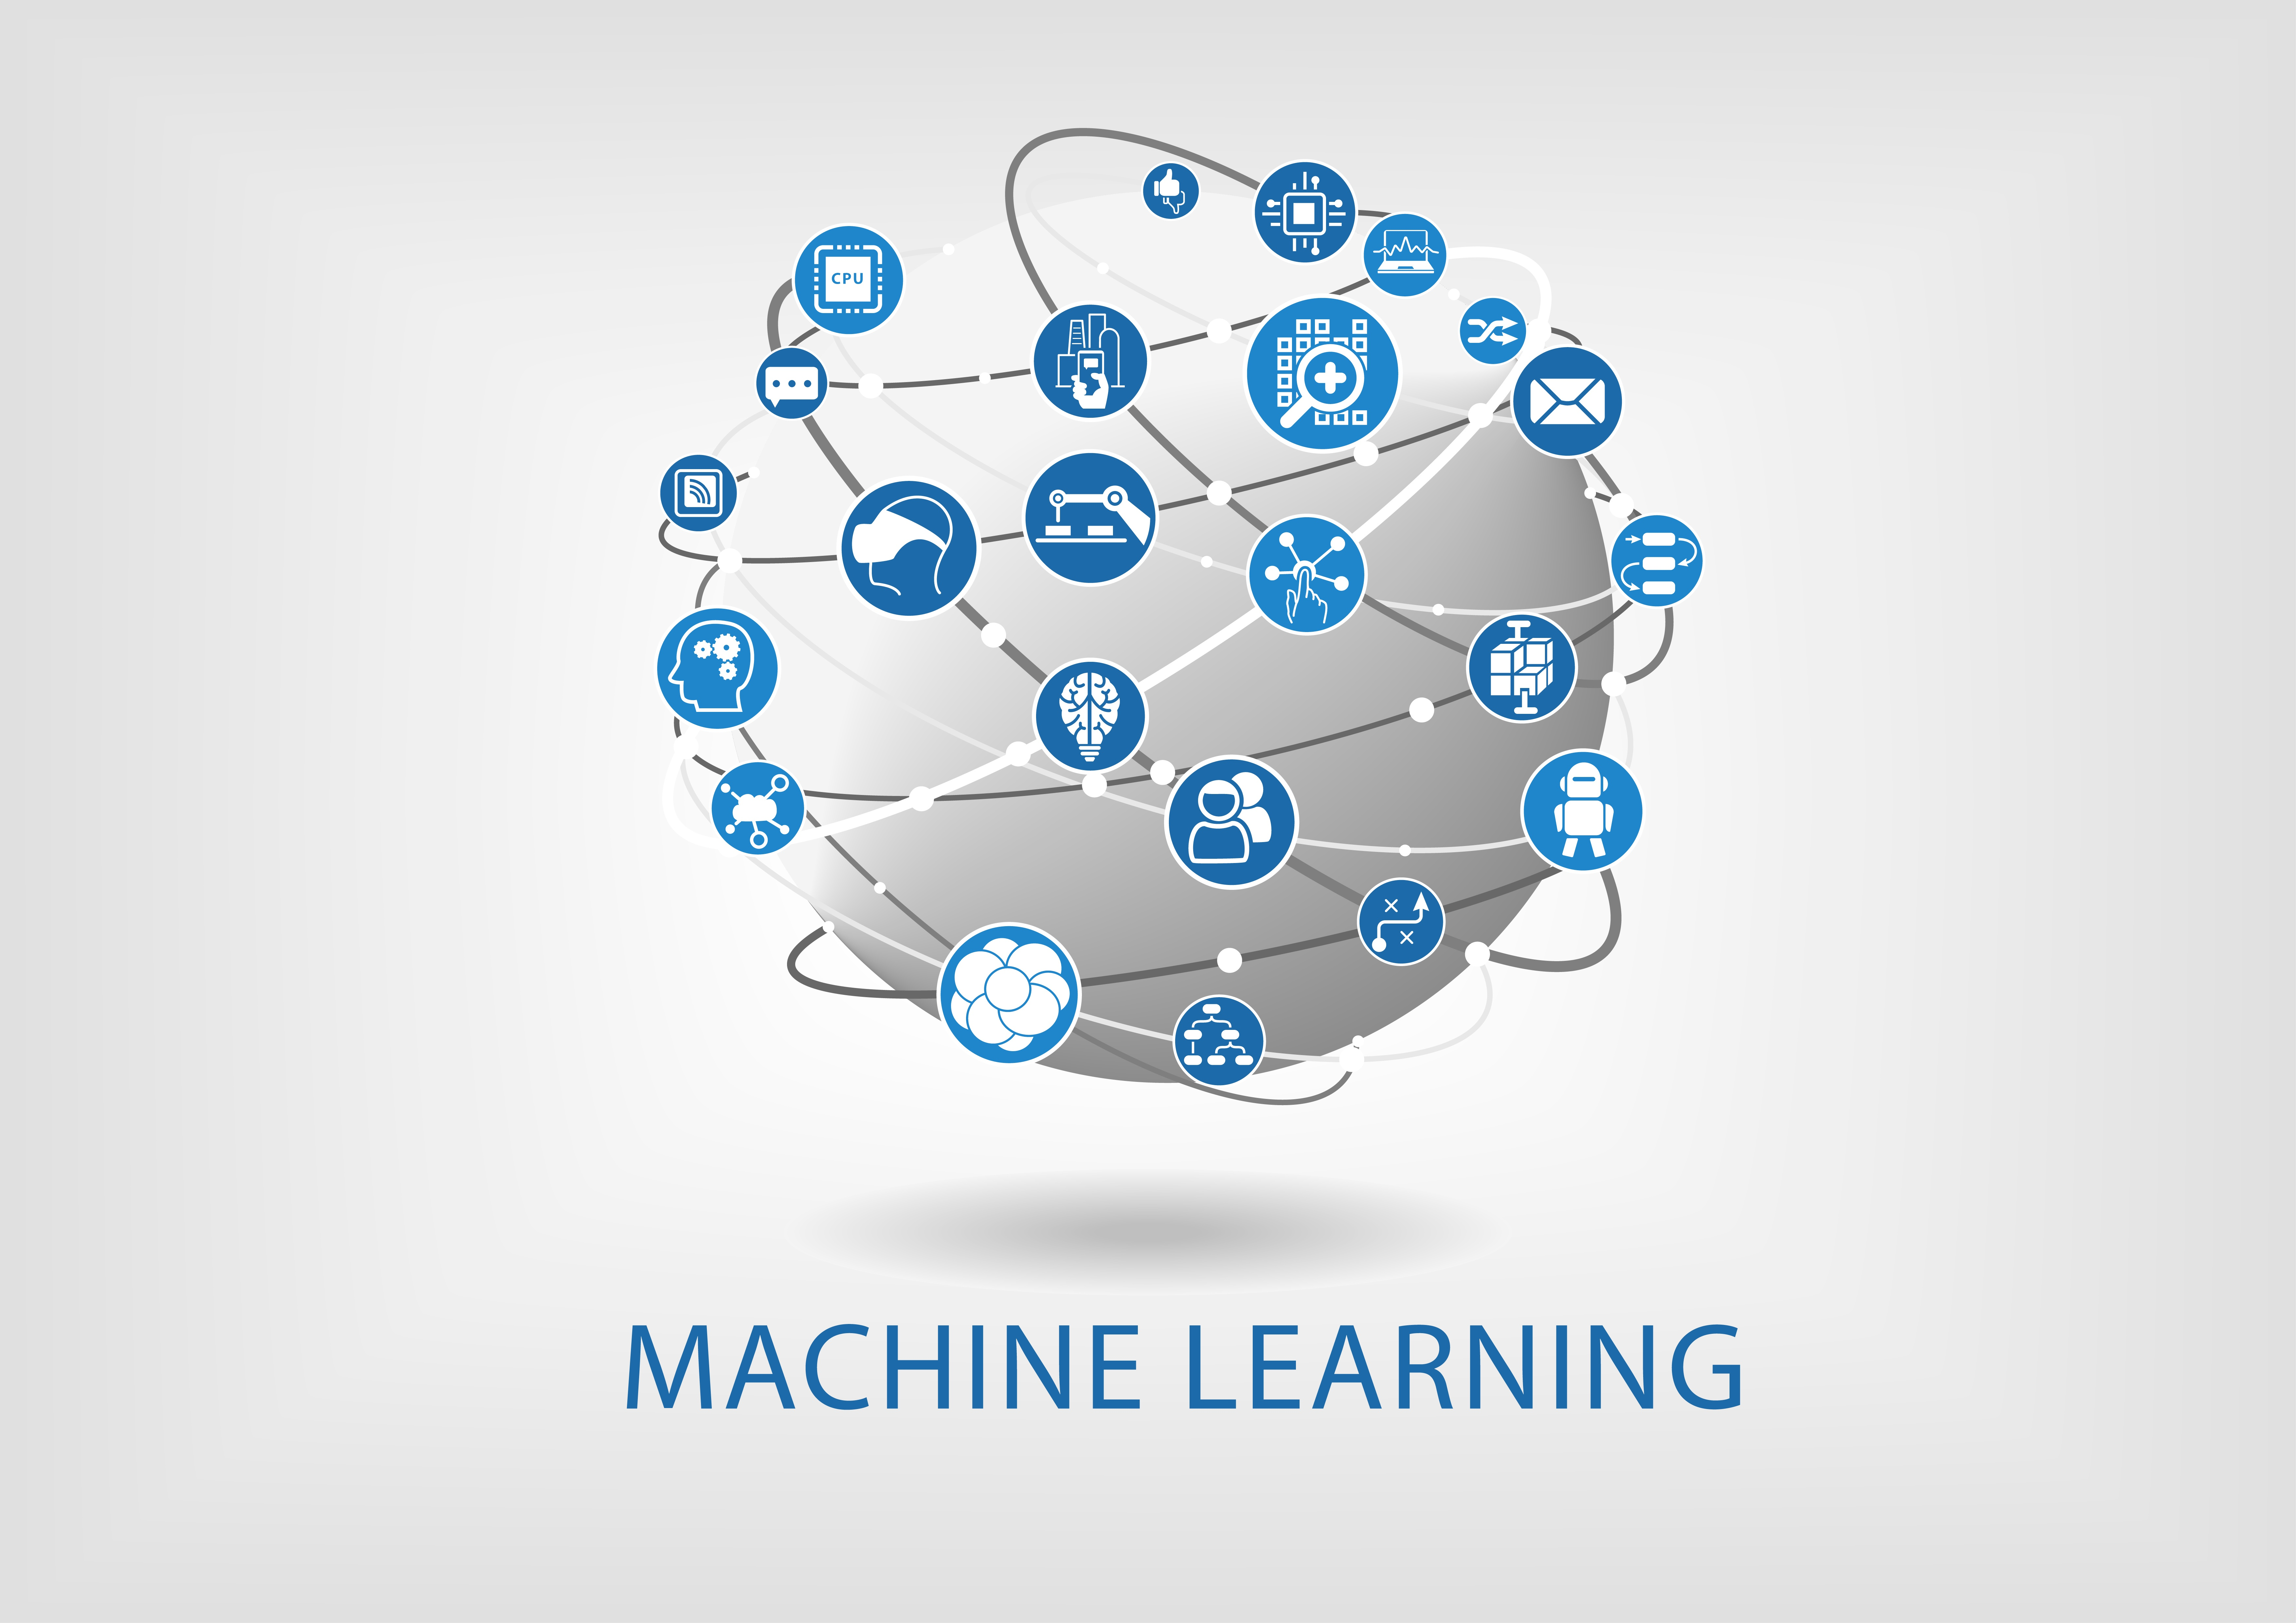 check the post:Machine Learning in the Financial Industry for a description of the image